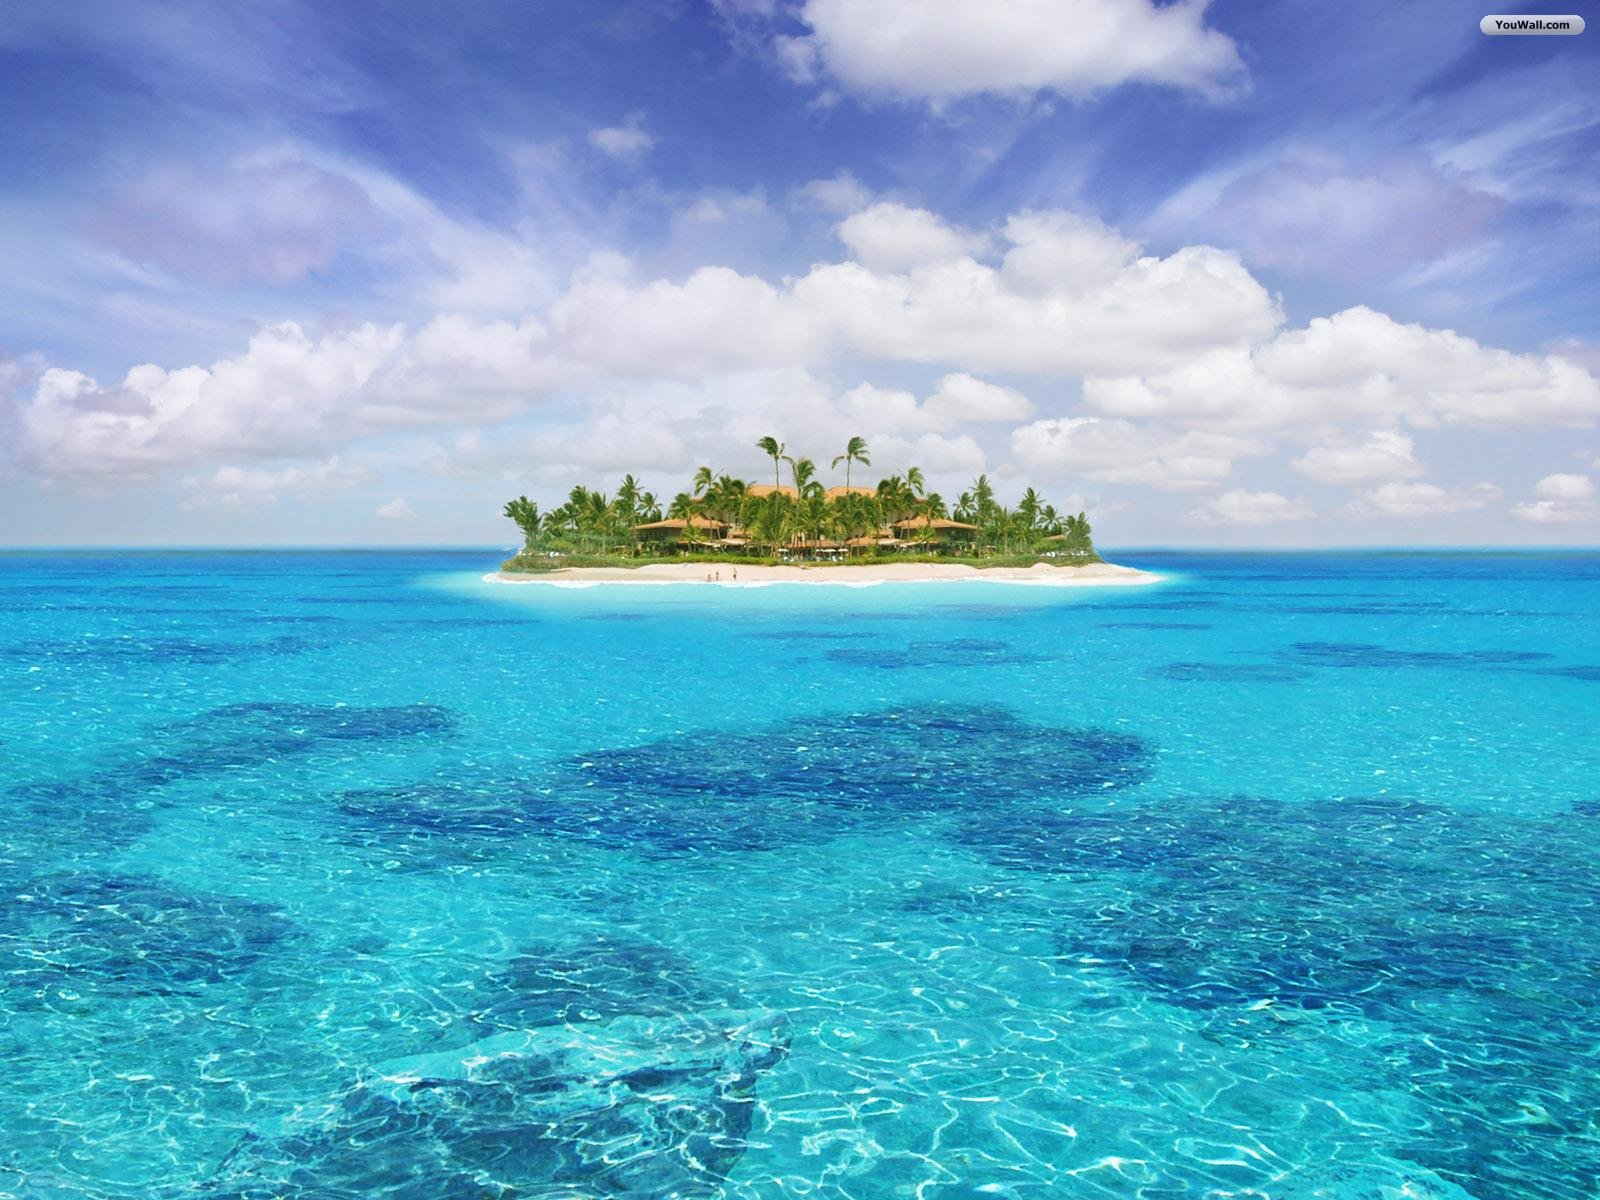 Paradise Island Wallpaper 1600x1200 329 KB 1600x1200